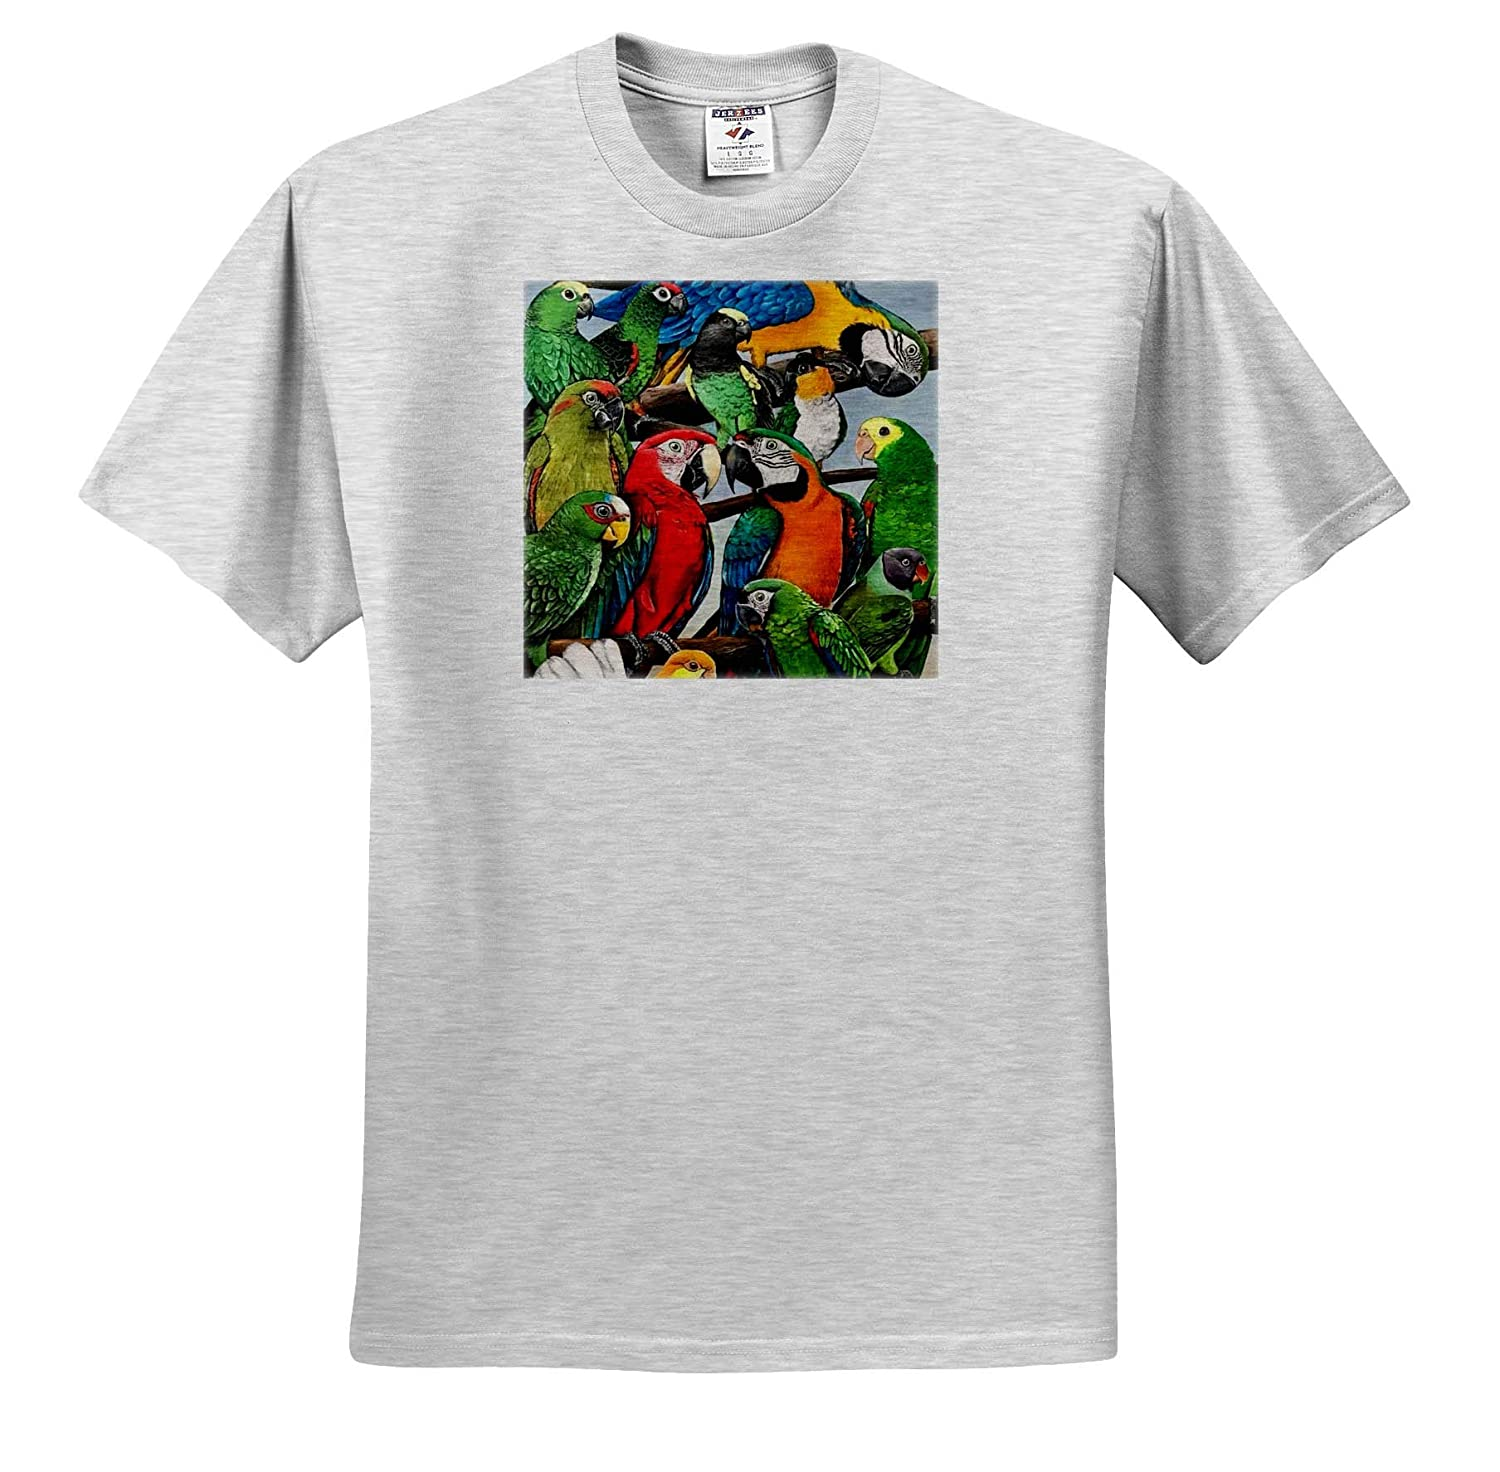 Adult T-Shirt XL Macaws and Other Parrots ts/_320529 3dRose Skye Elizabeth Designs